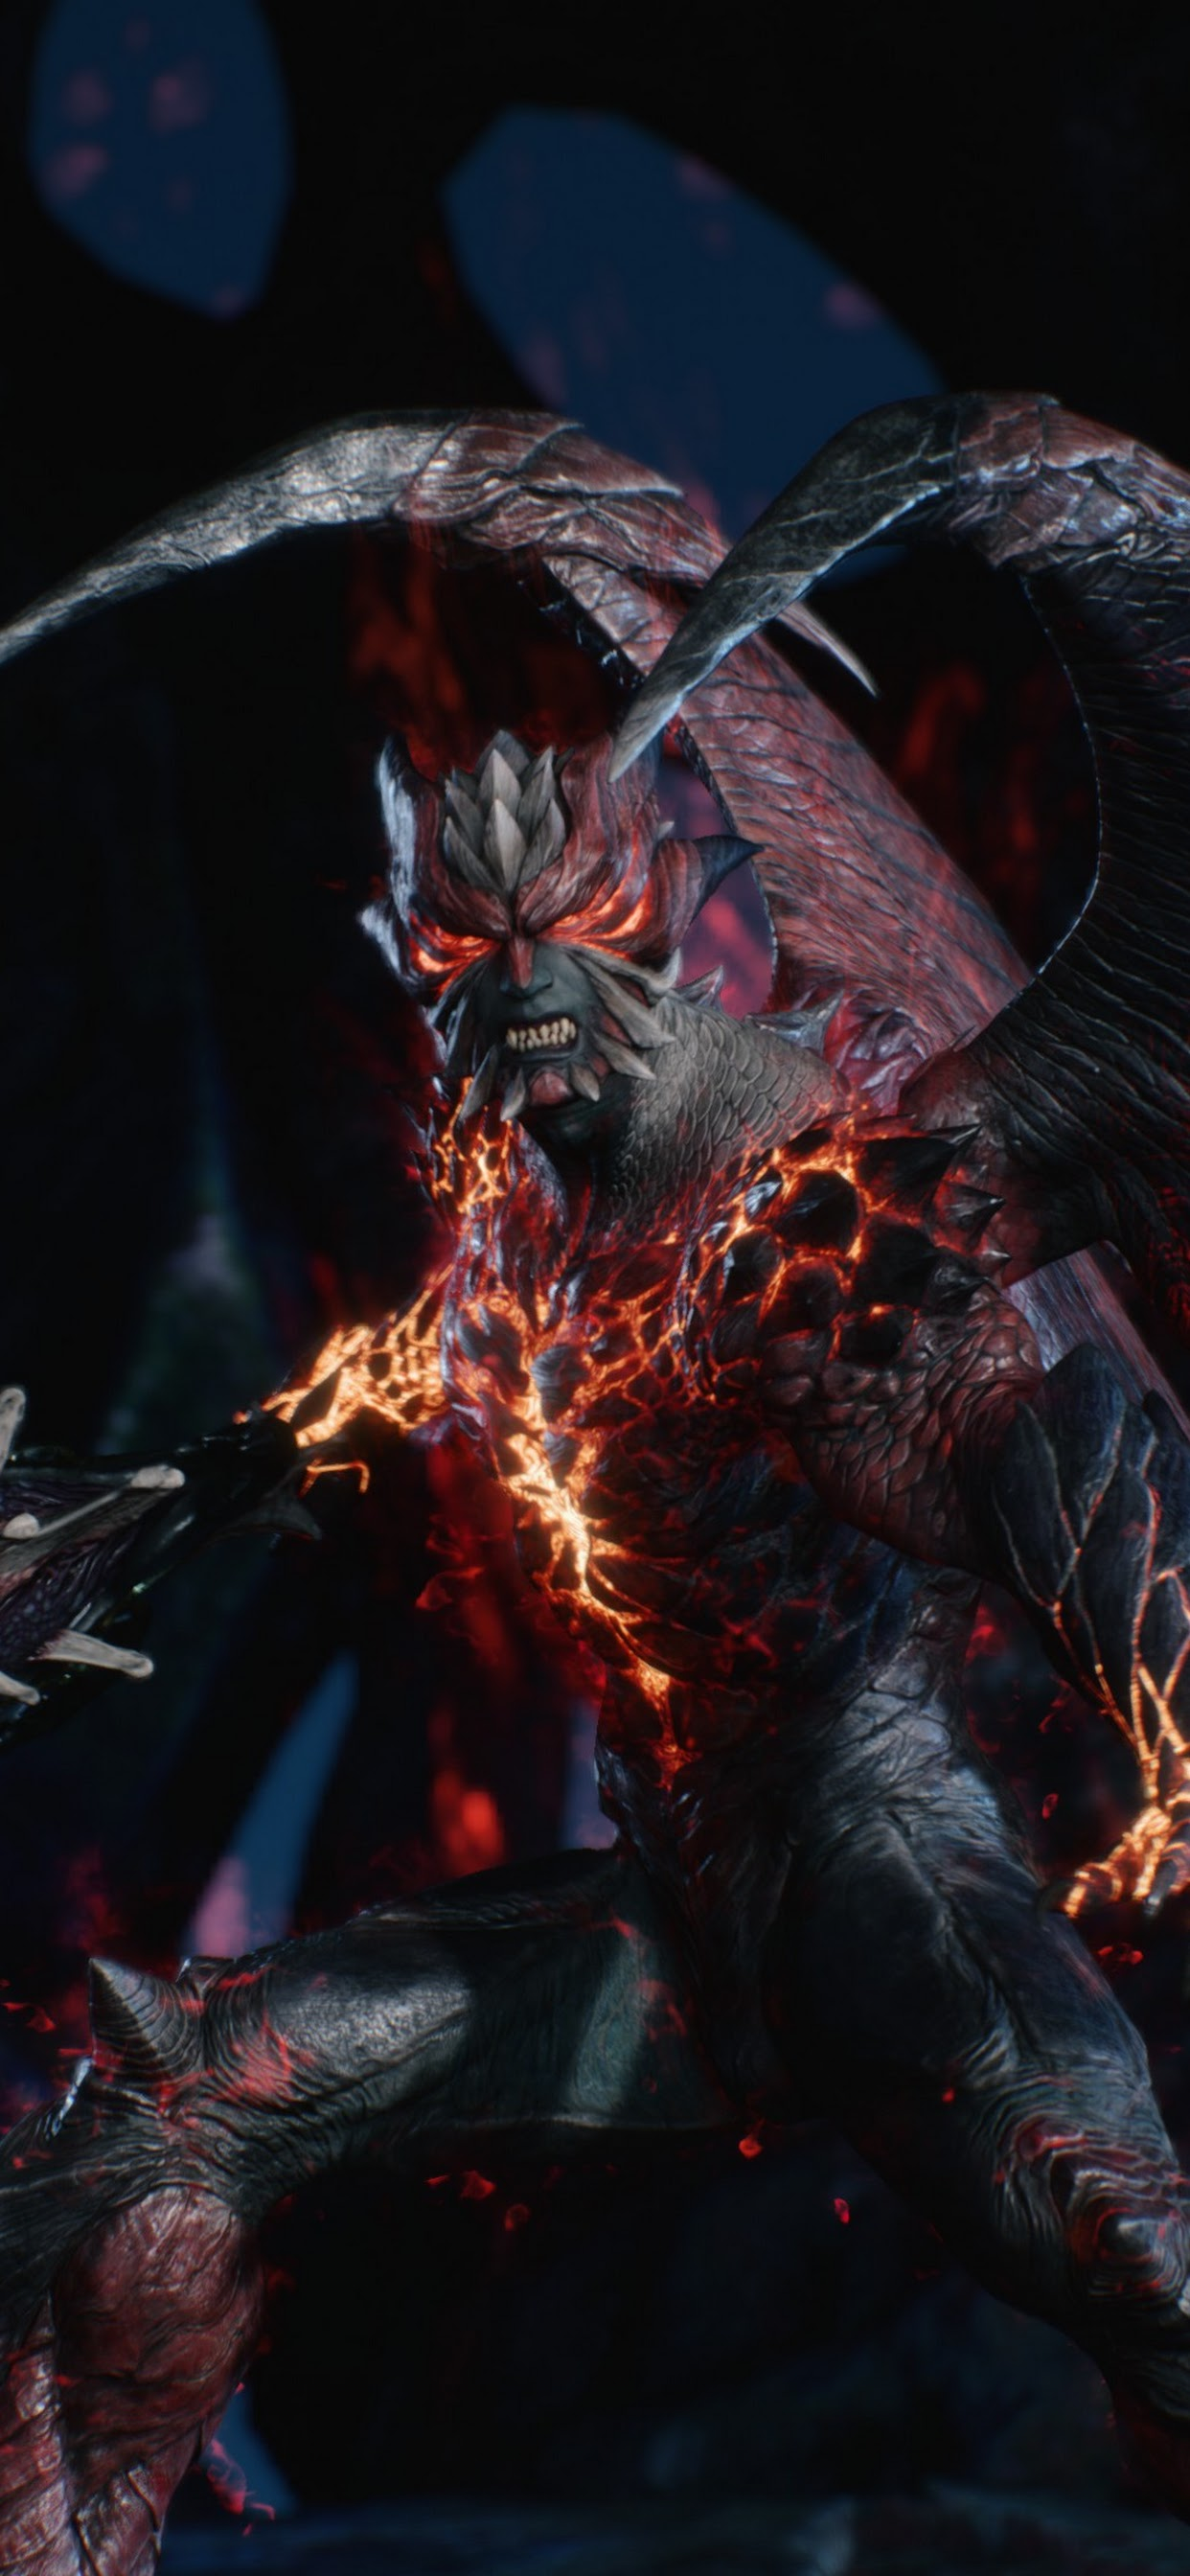 devil may cry 5 dante devil trigger uhdpaper.com 4K 173